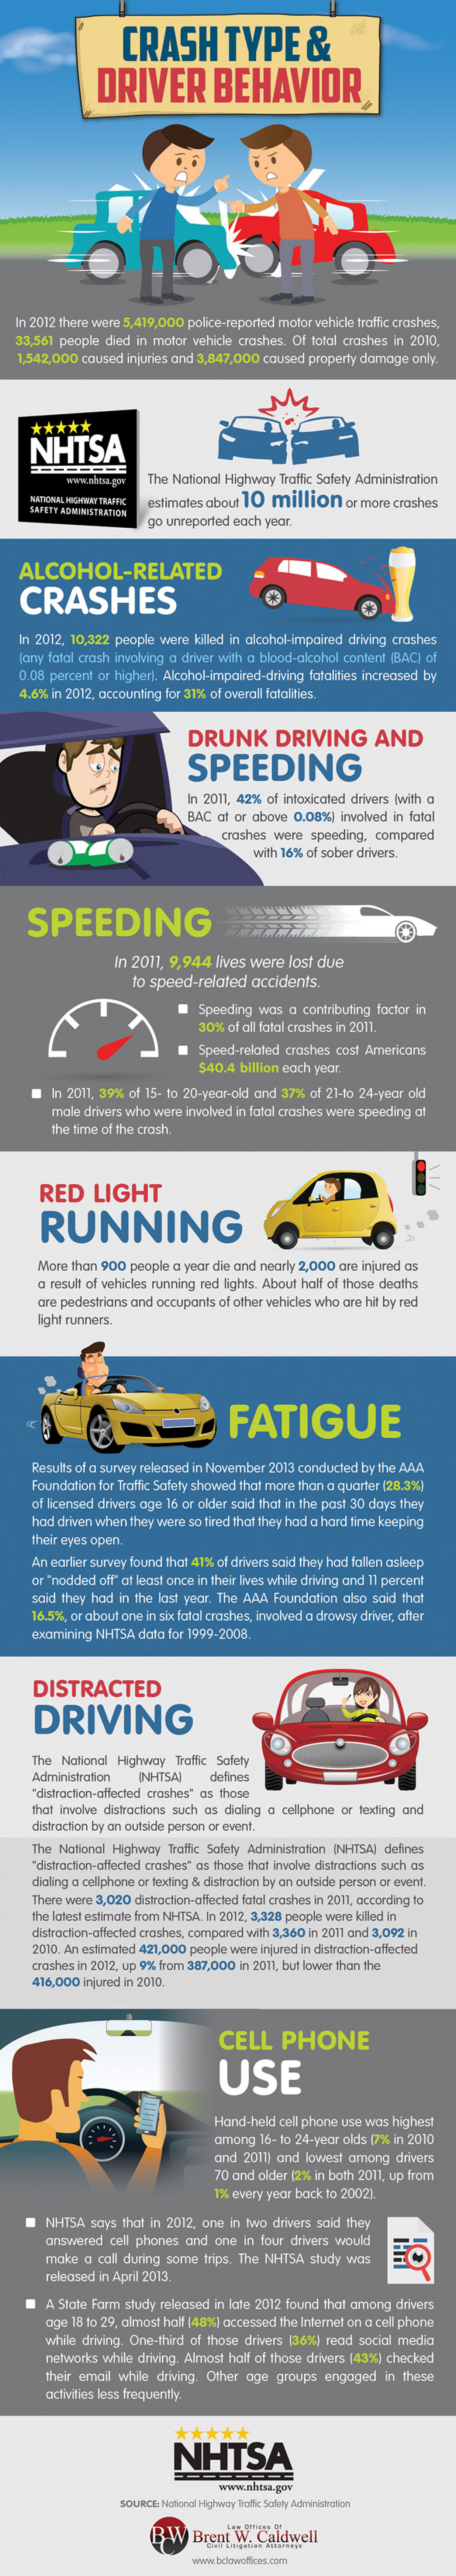 Crash Type & Driver Behavior Infographic